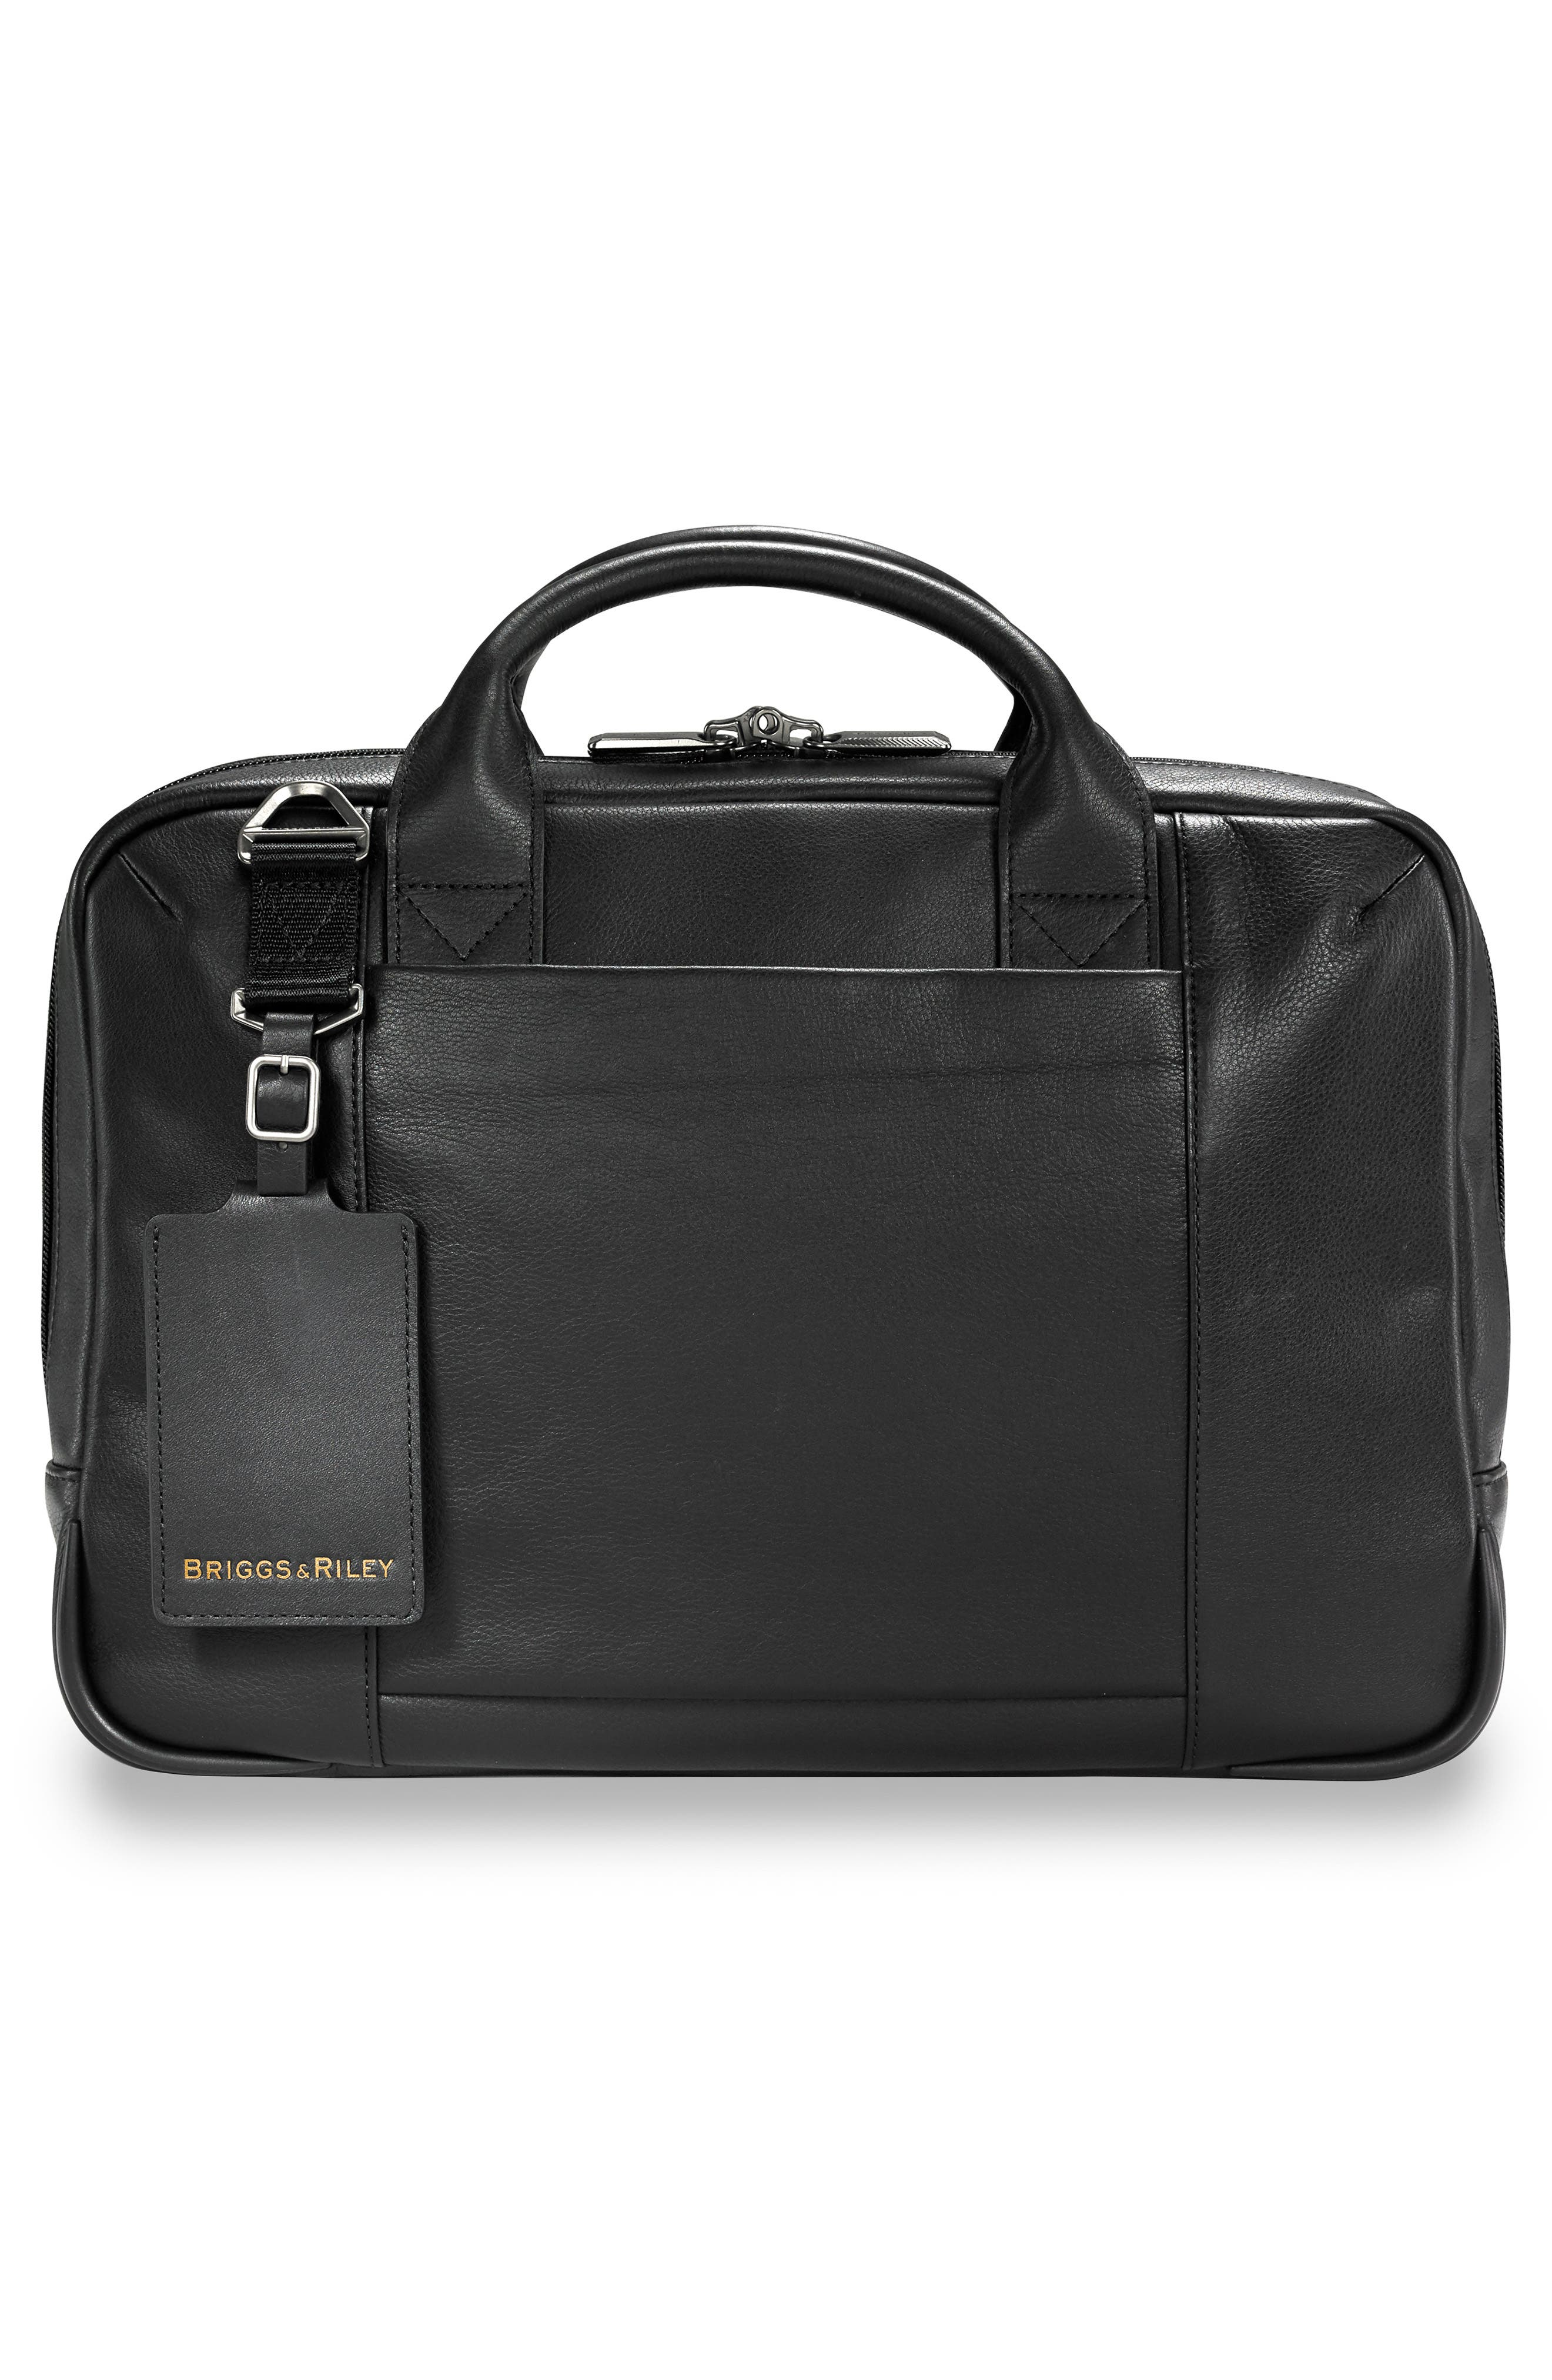 BRIGGS & RILEY,                             @work Slim Leather Laptop Briefcase,                             Alternate thumbnail 2, color,                             BLACK